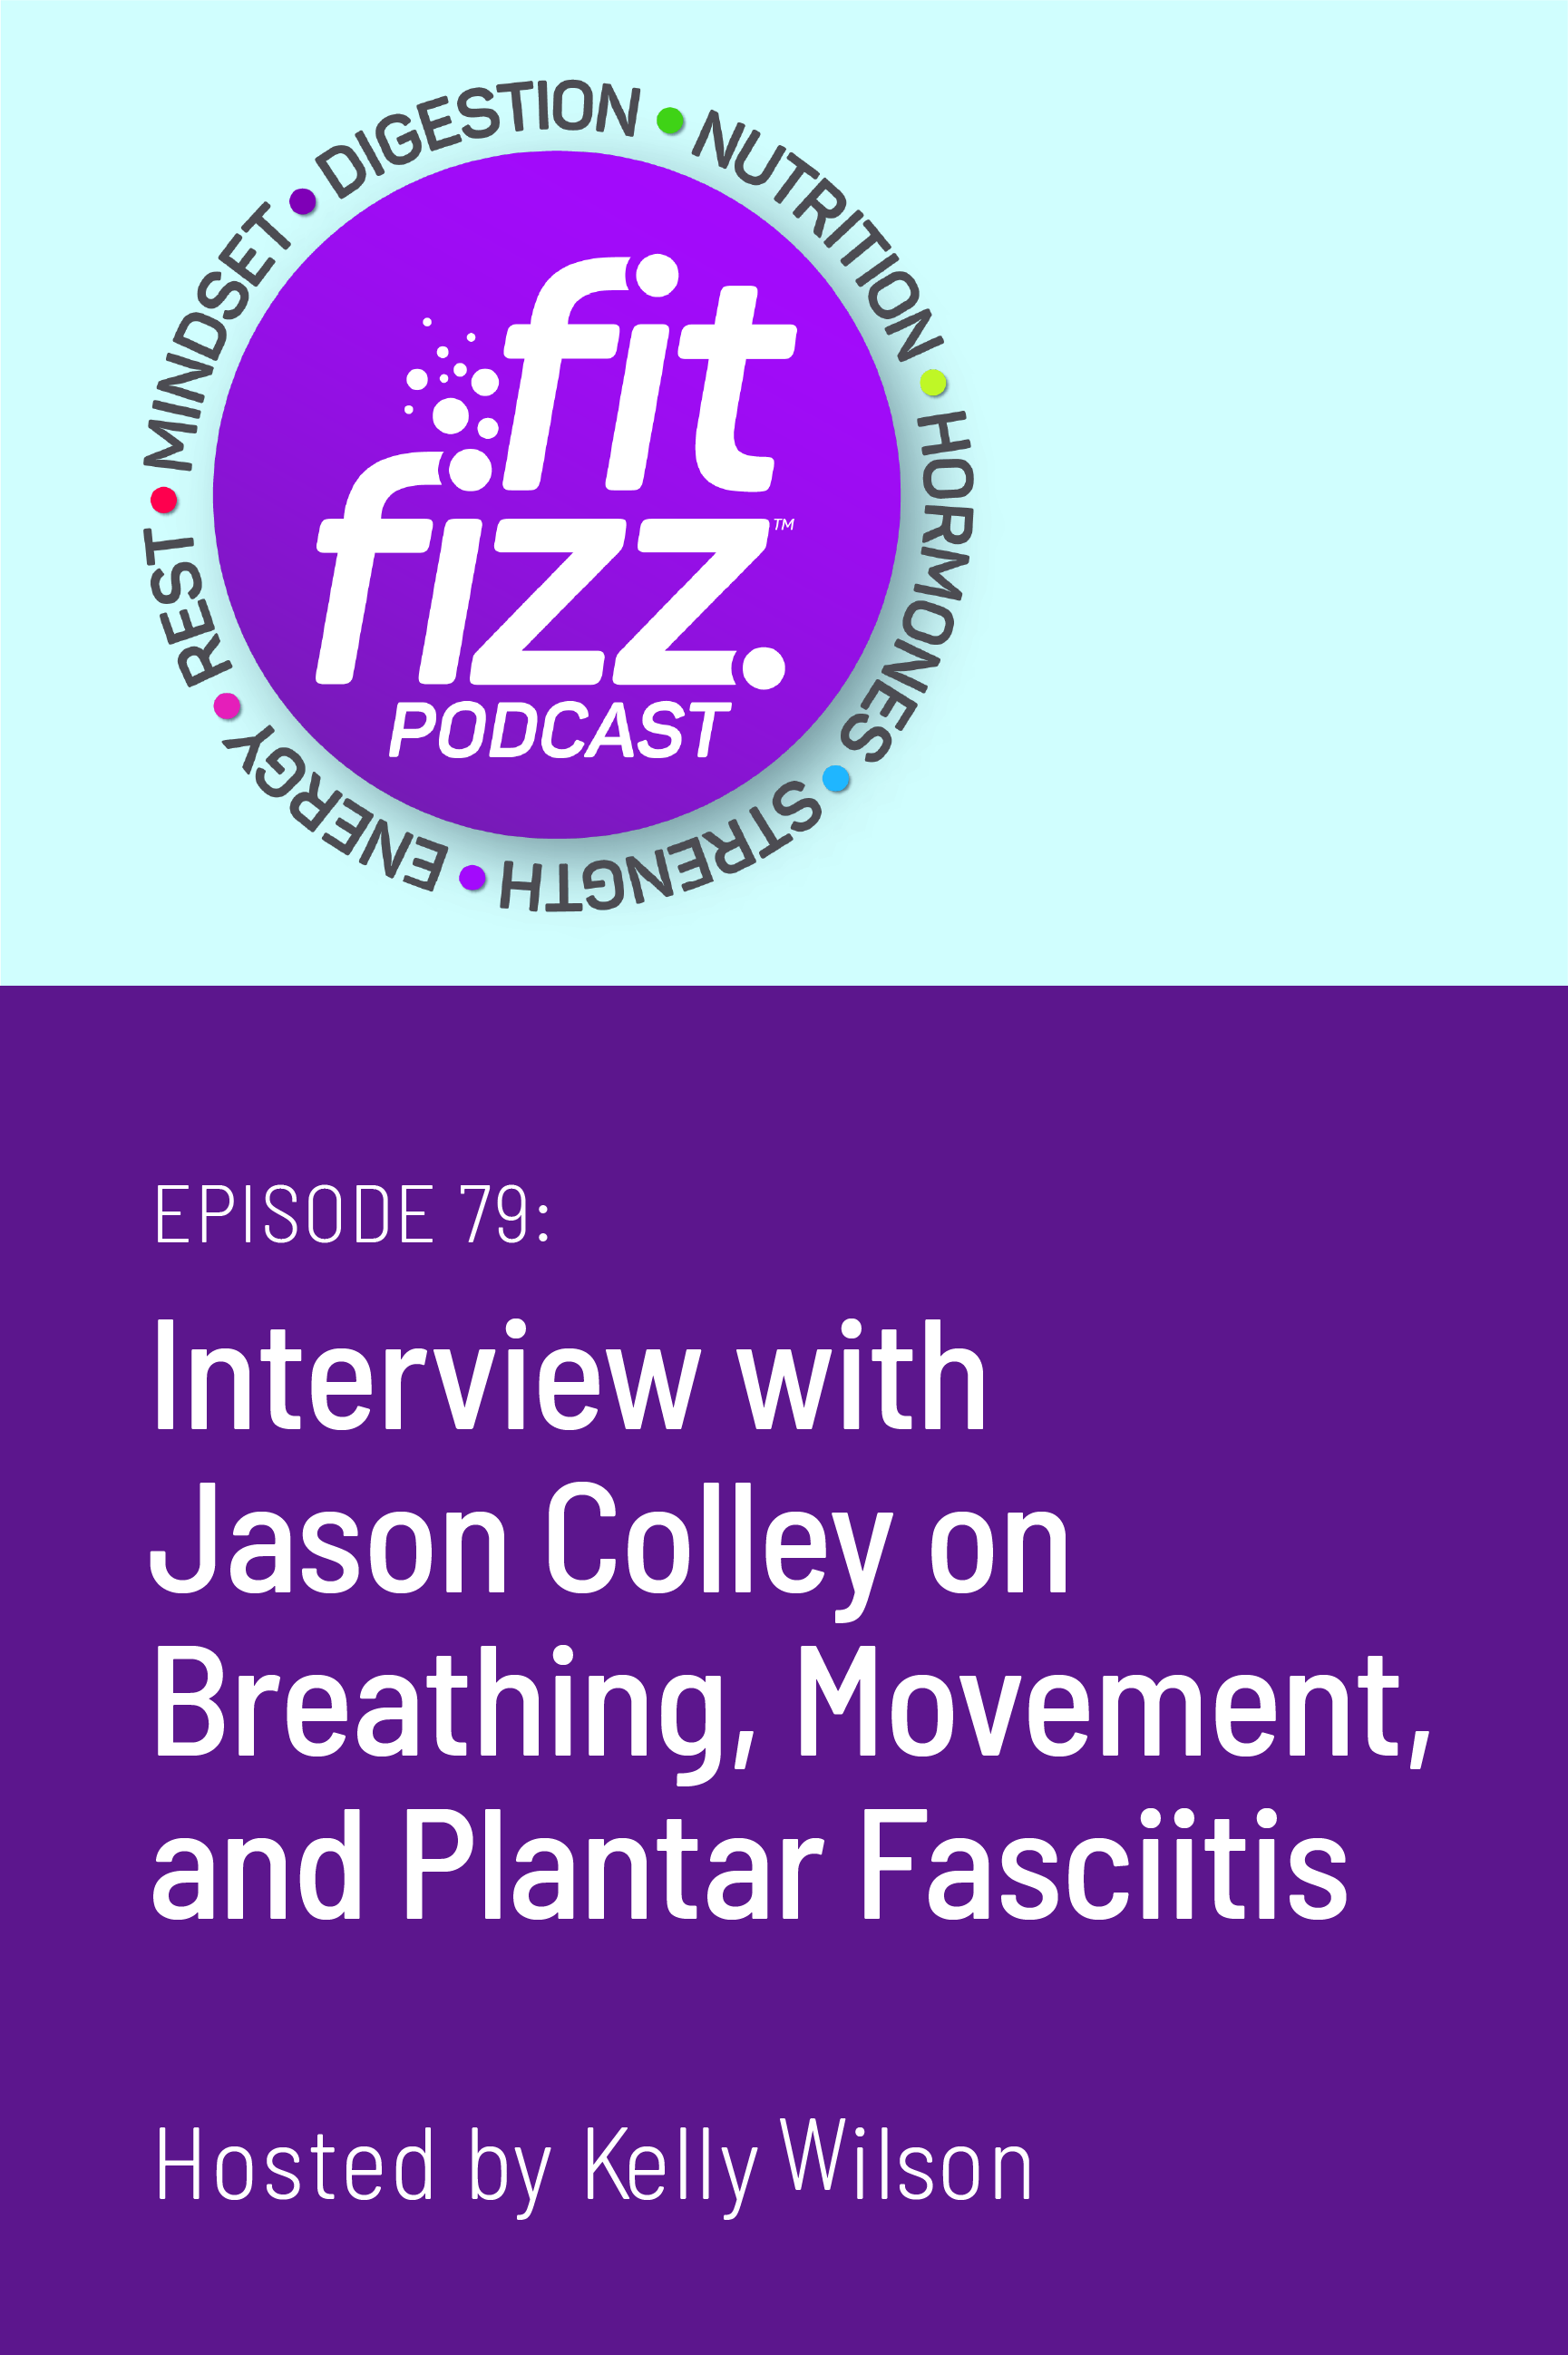 Ep. 79: Interview with Jason Colley on Breathing, Movement, and Plantar Fasciitis